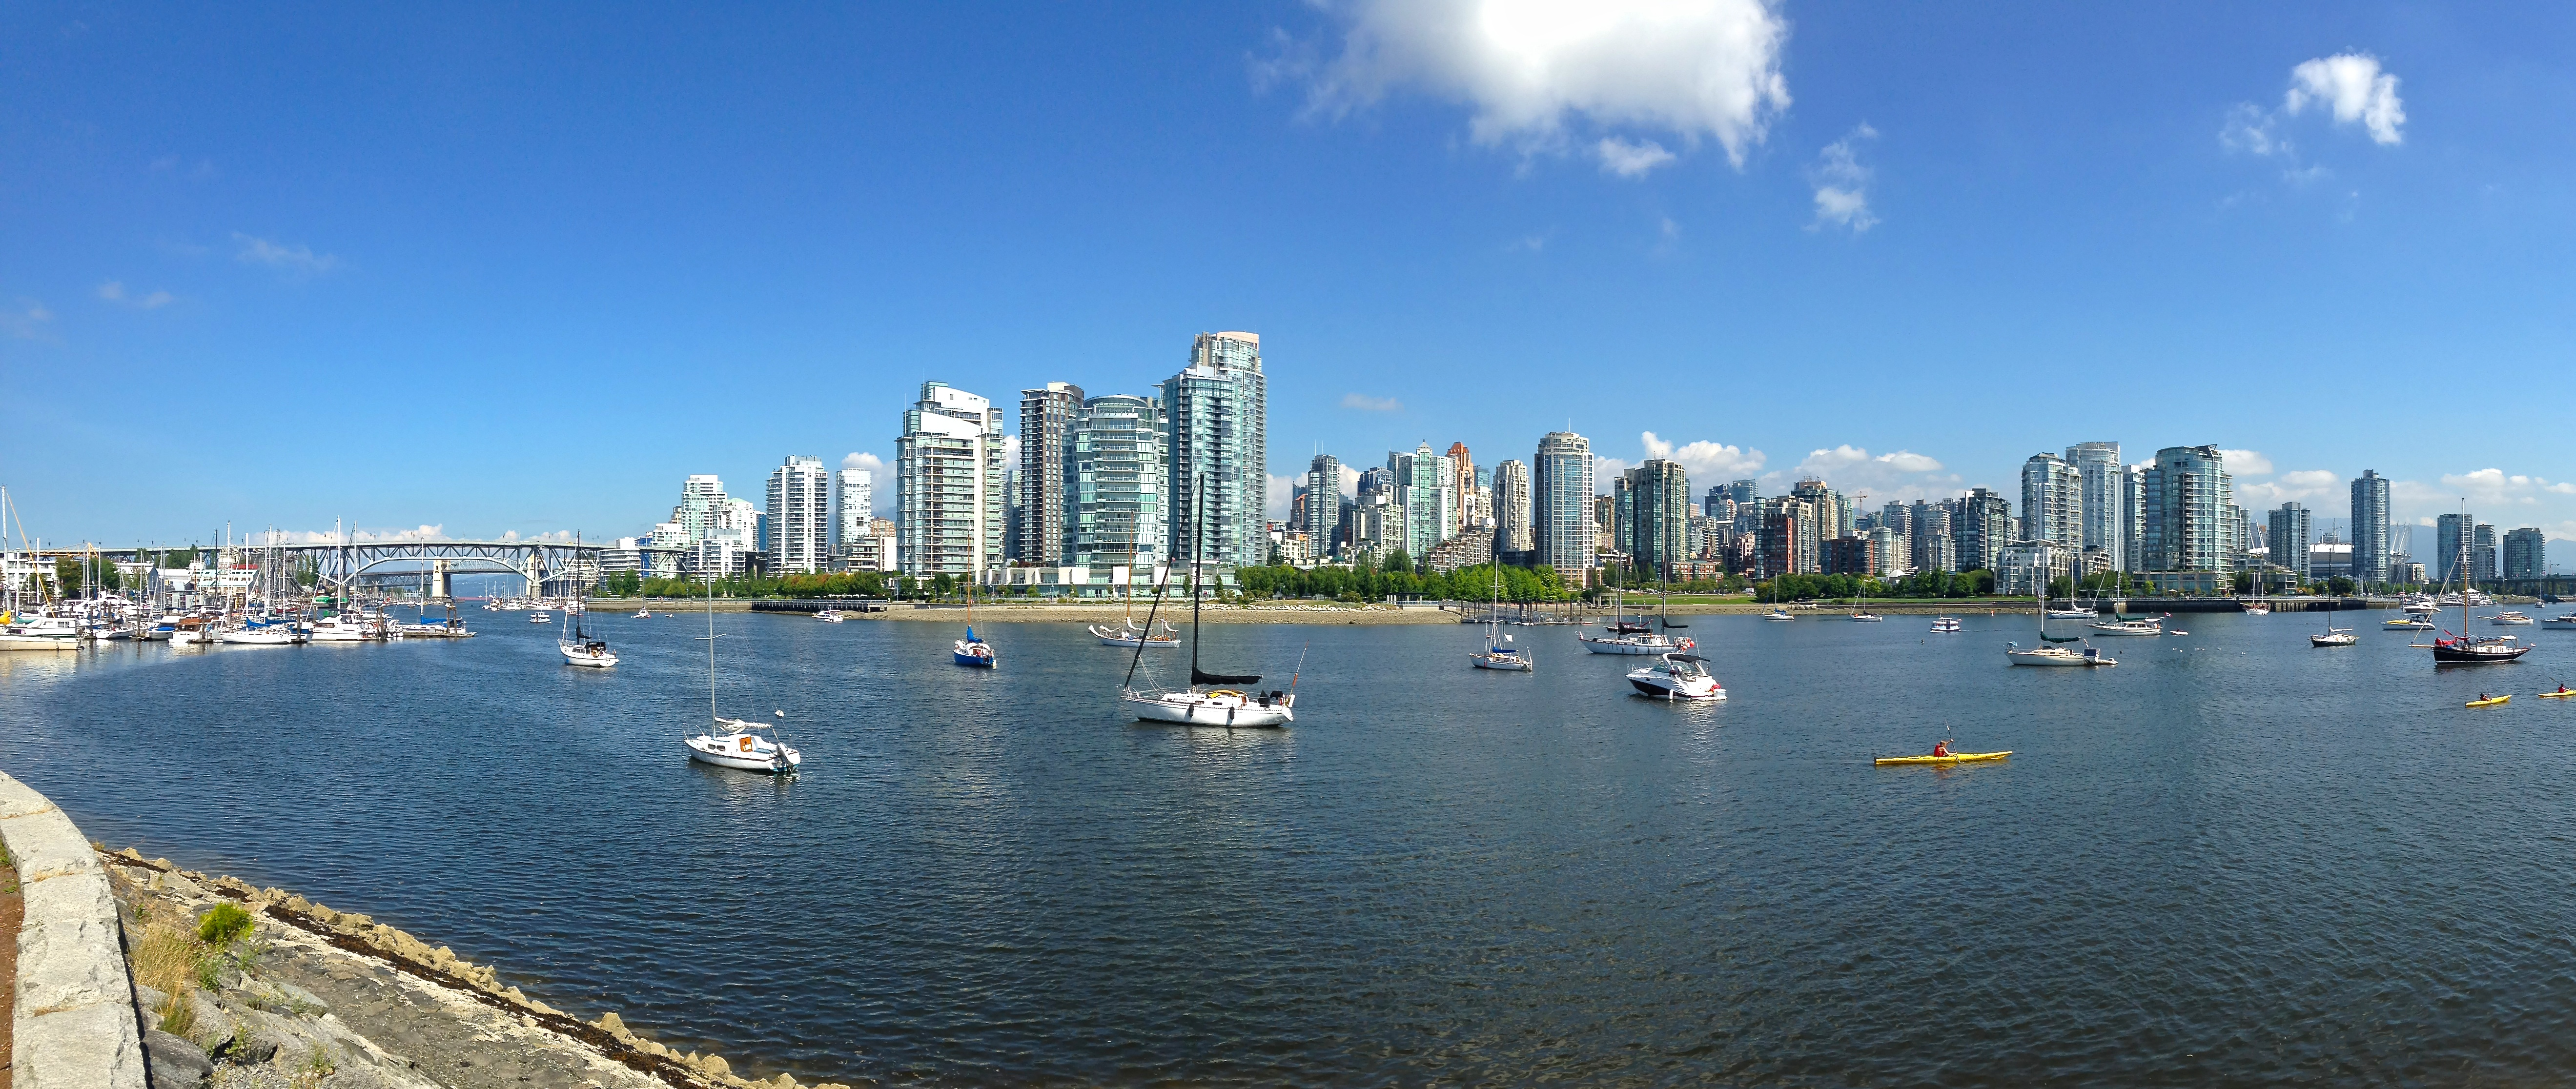 Looking across False Creek back to downtown Vancouver.